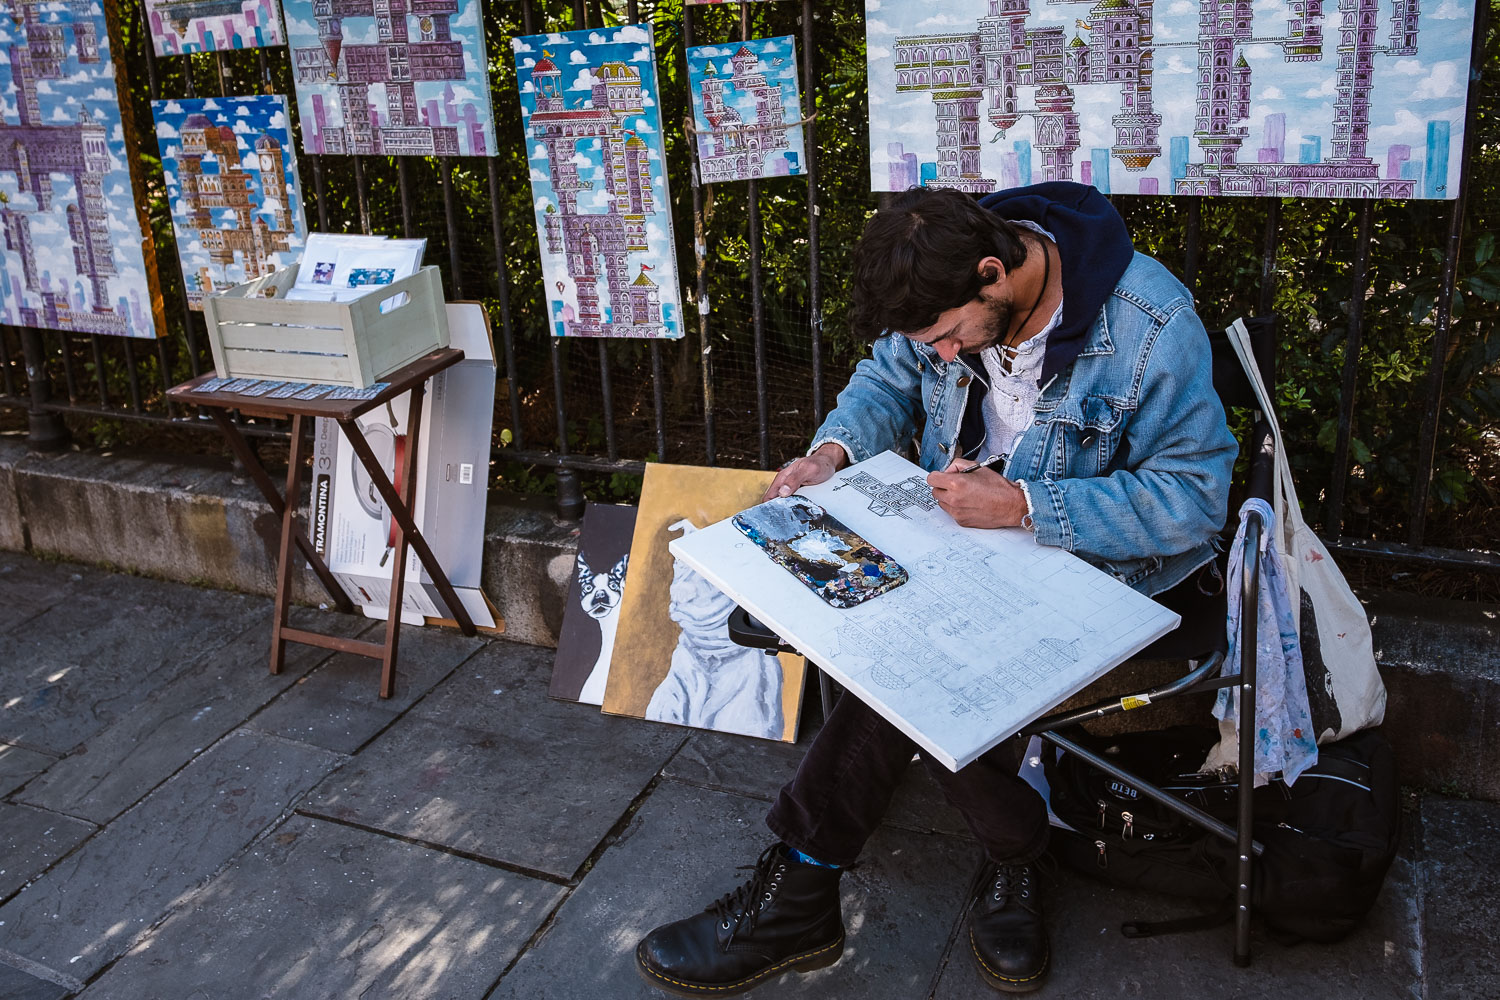 """An Artist at work - Travel photography and guide by © Natasha Lequepeys for """"And Then I Met Yoko"""". #neworleans #nola #photoblog #streetphotography #travelitinerary #fujifilm"""